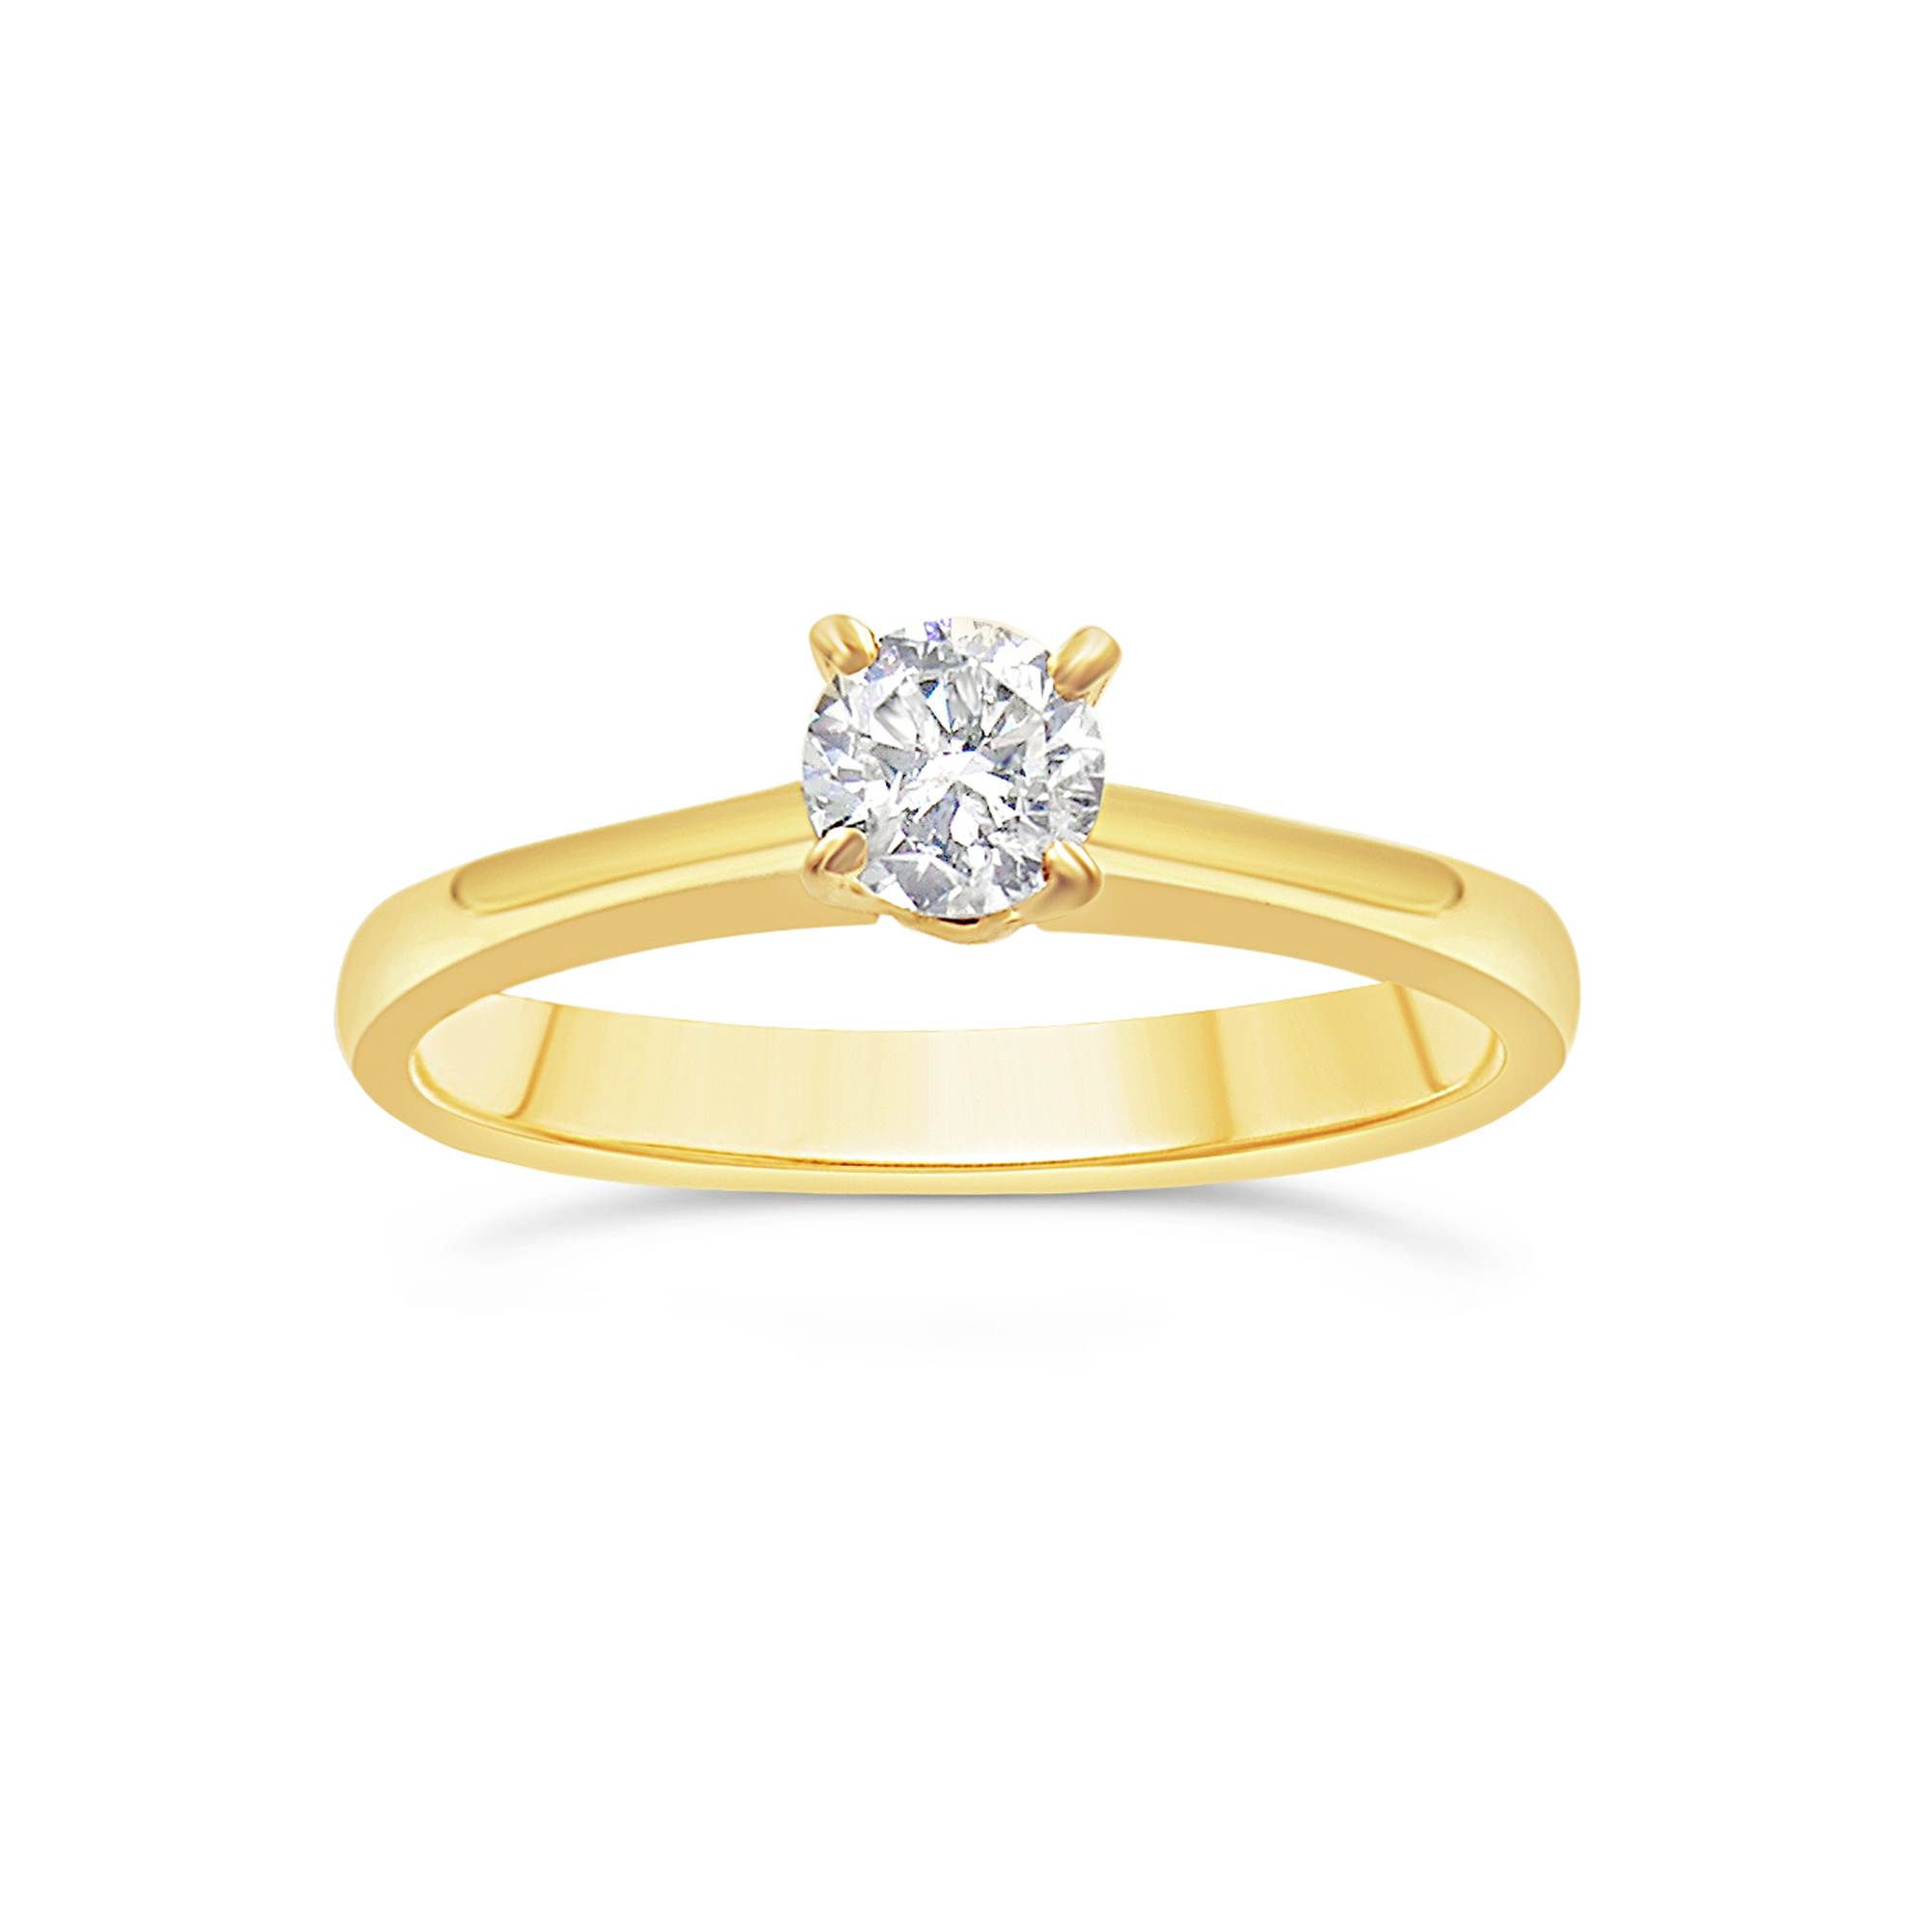 18kt yellow gold engagement ring with 0.30 ct diamond